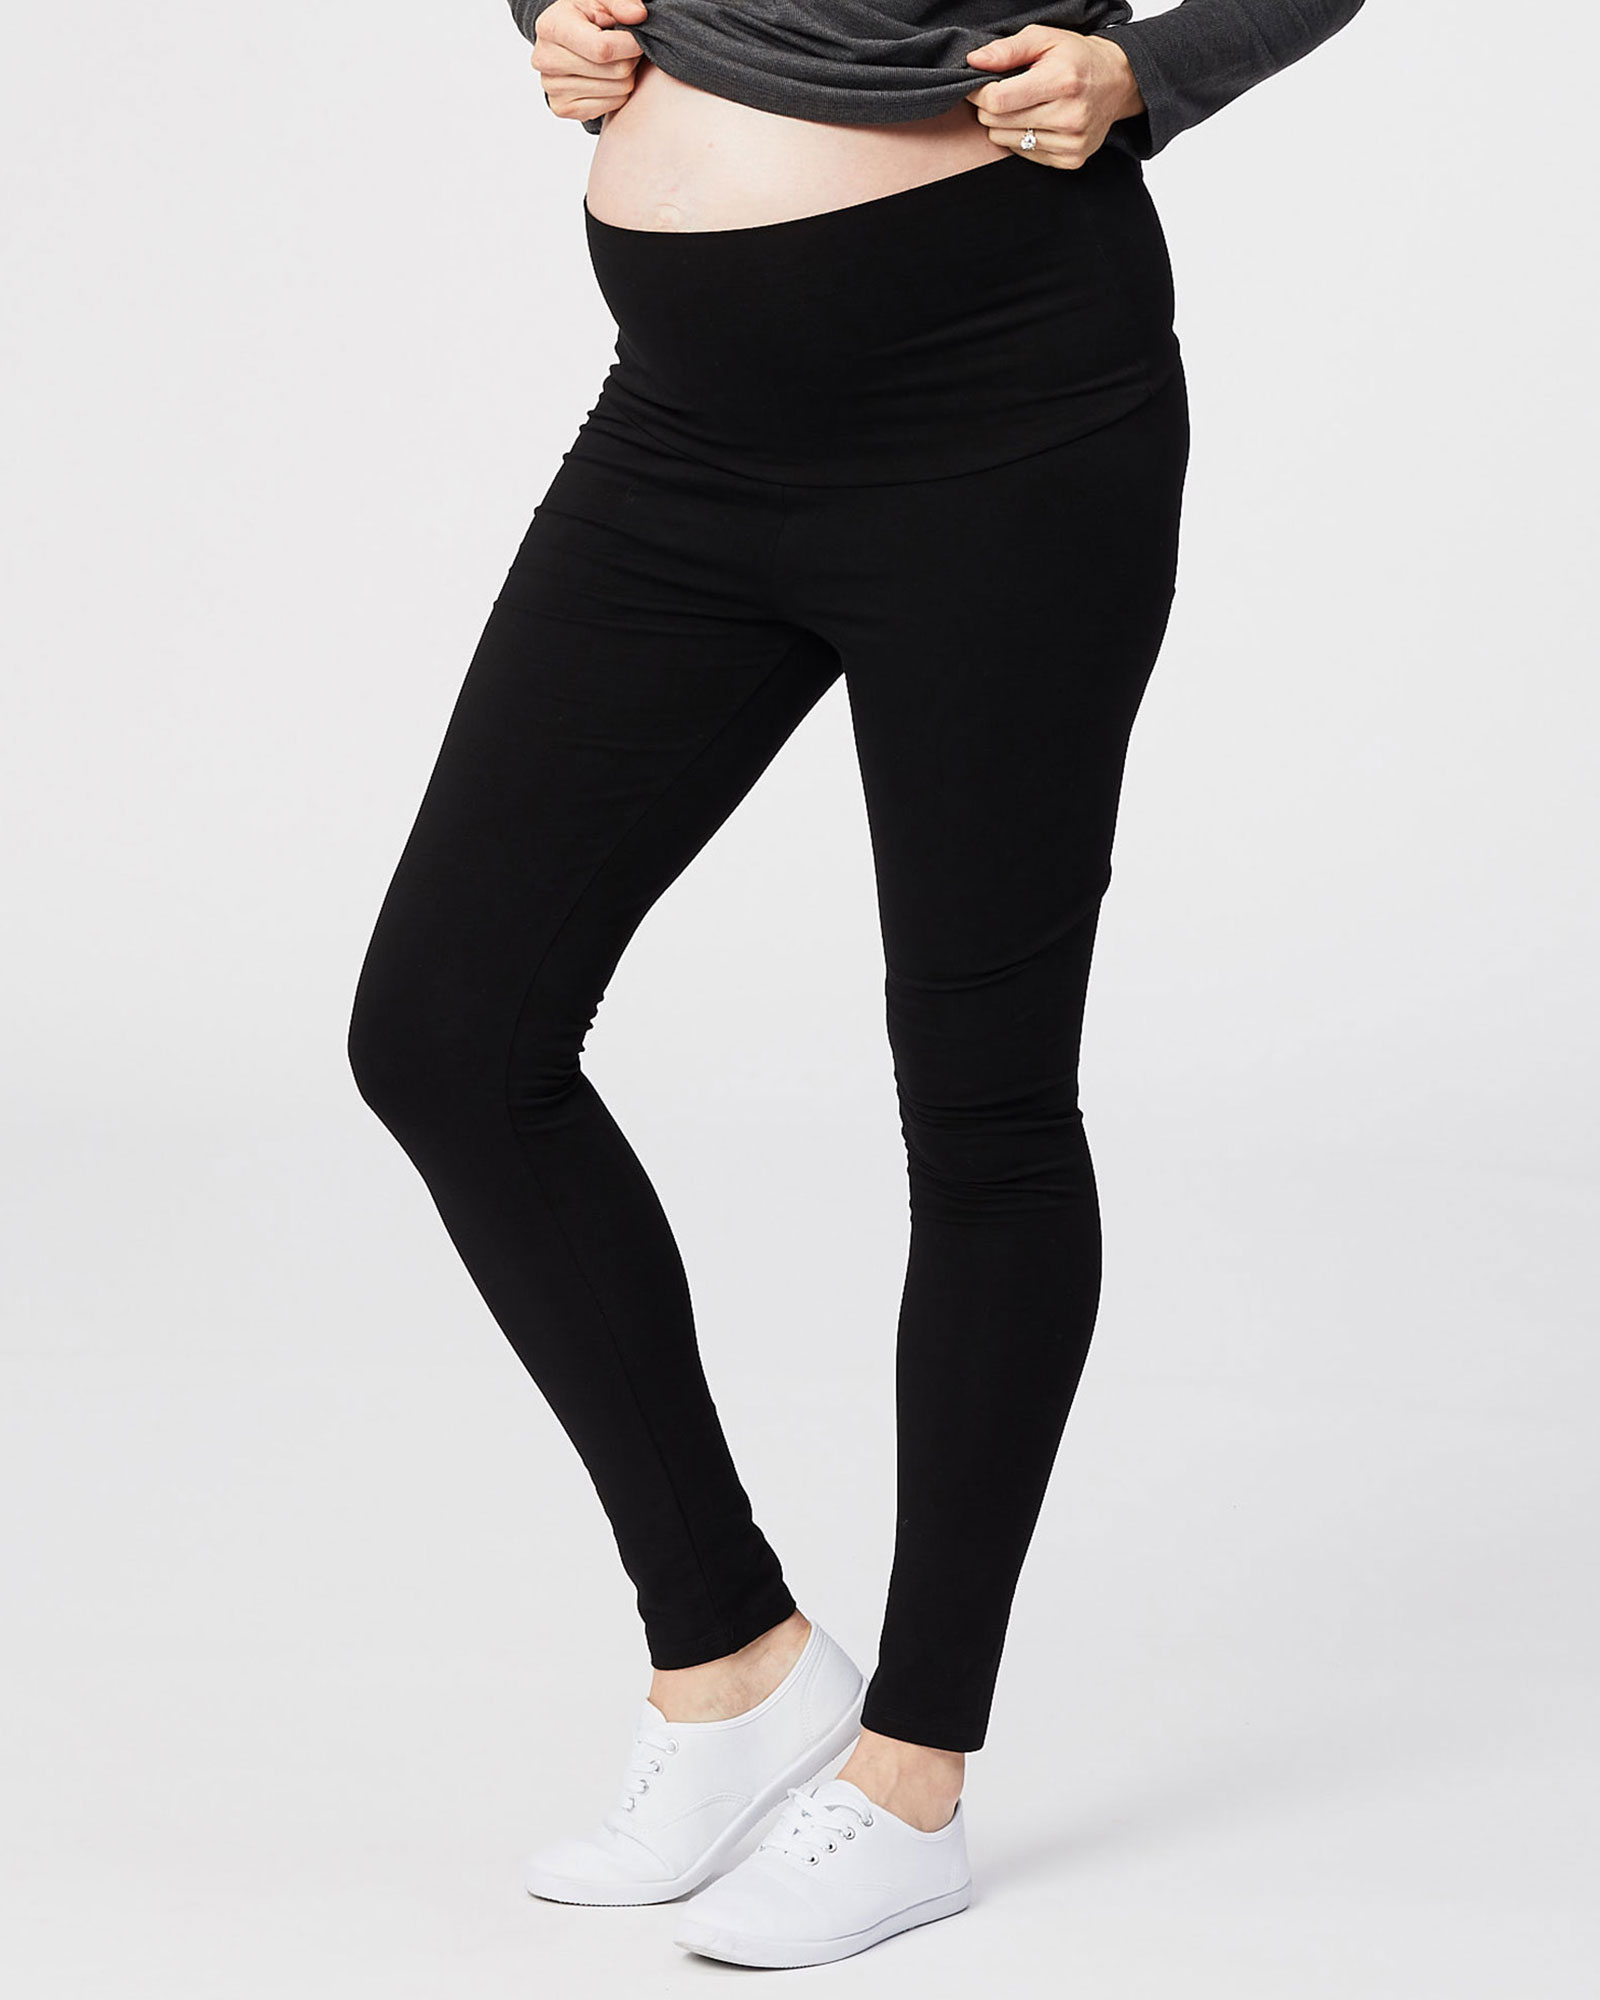 Maternity Legging - Foldable Waist